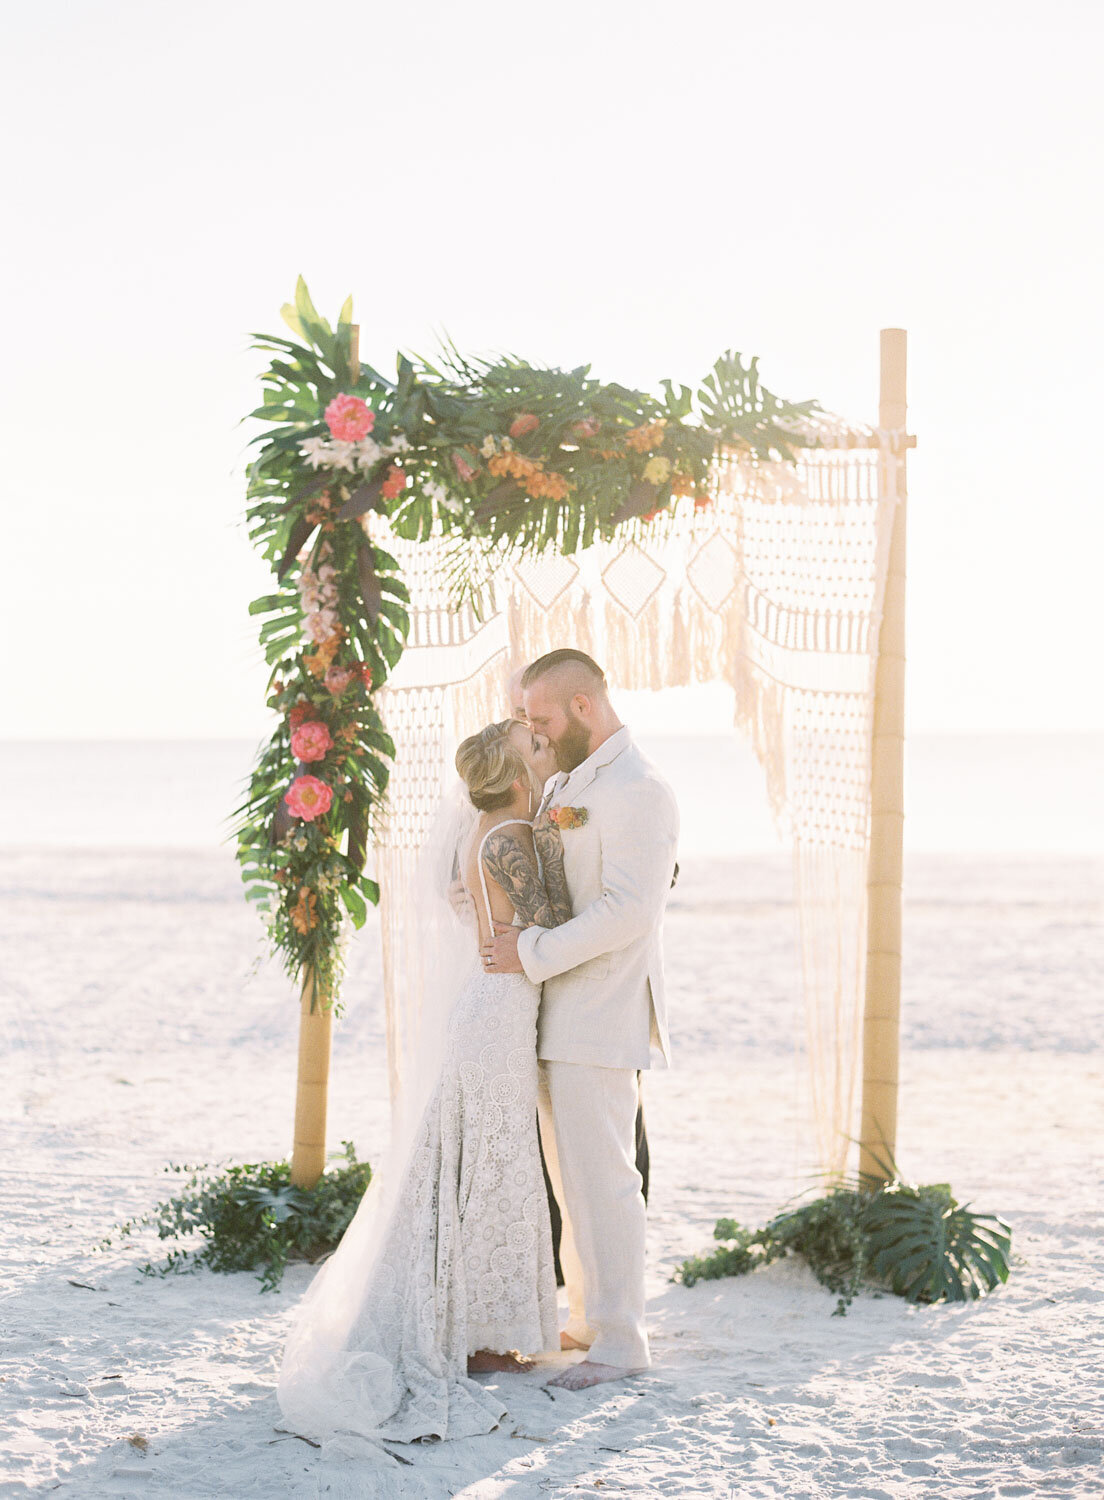 elegant-bohemian-tropical-december-destination-wedding-melanie-gabrielle-photography-martha-stewart-submission-040